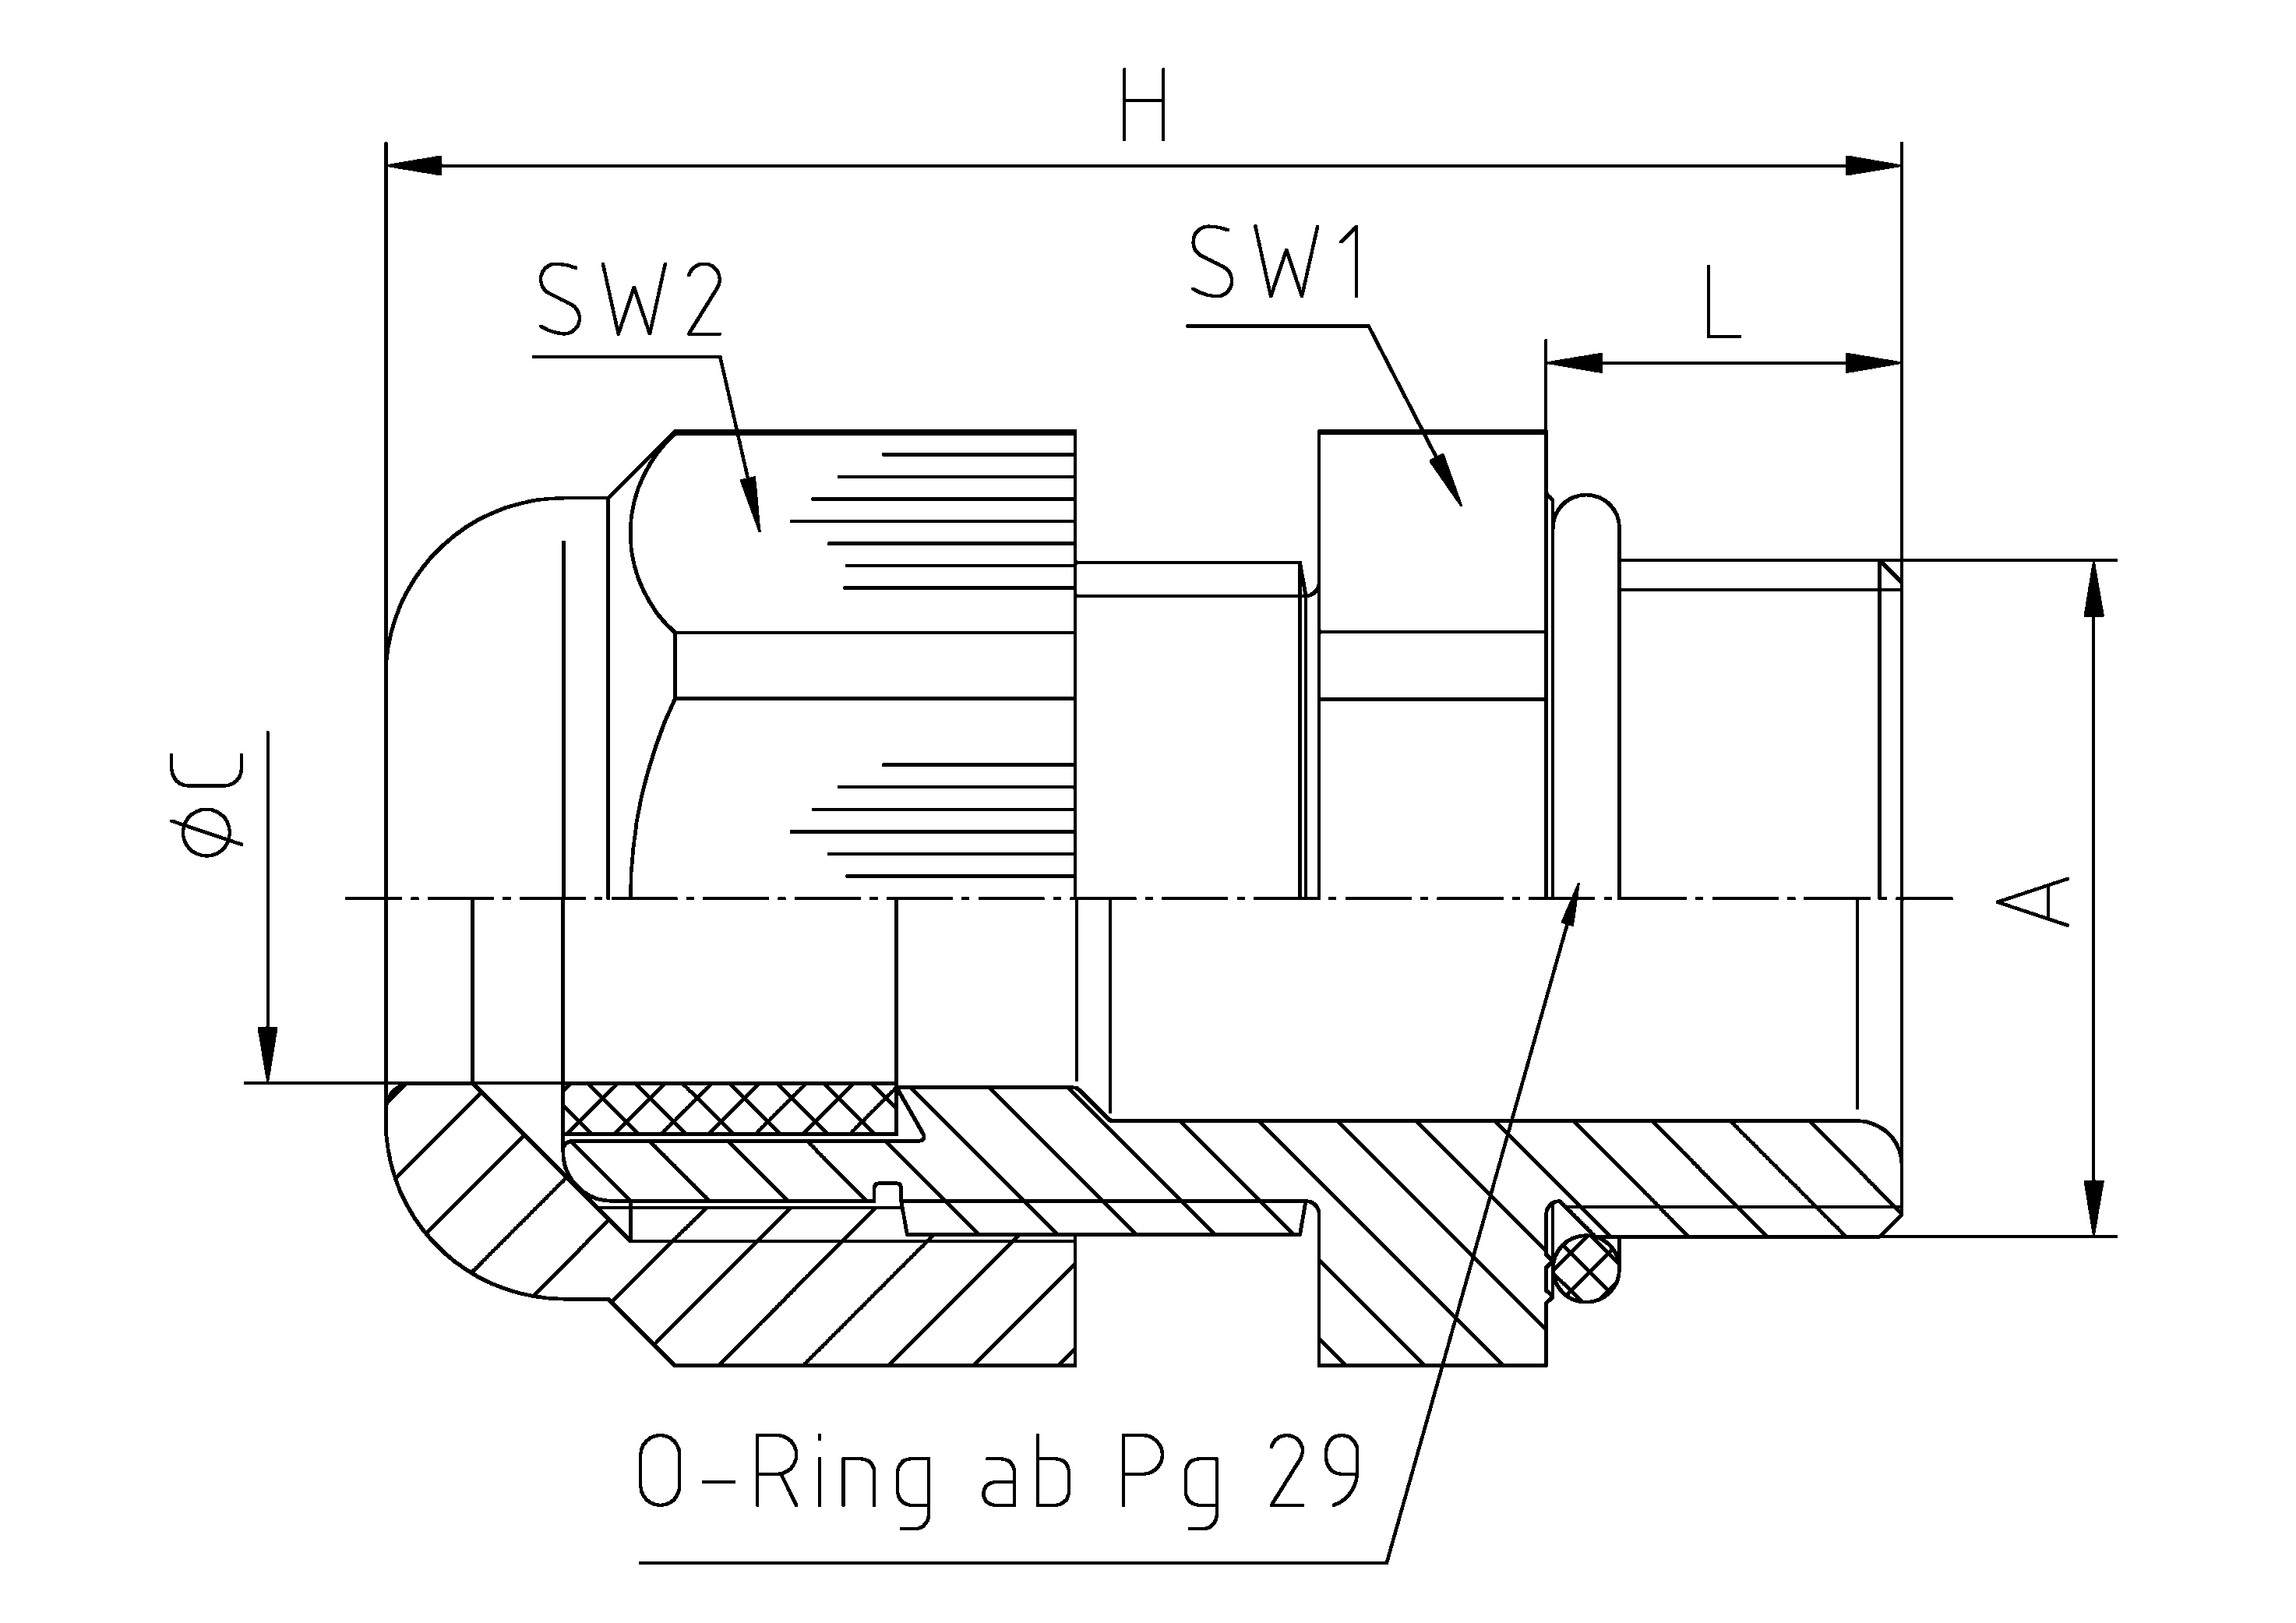 waterproof switch box 2 gang switch box wiring diagram